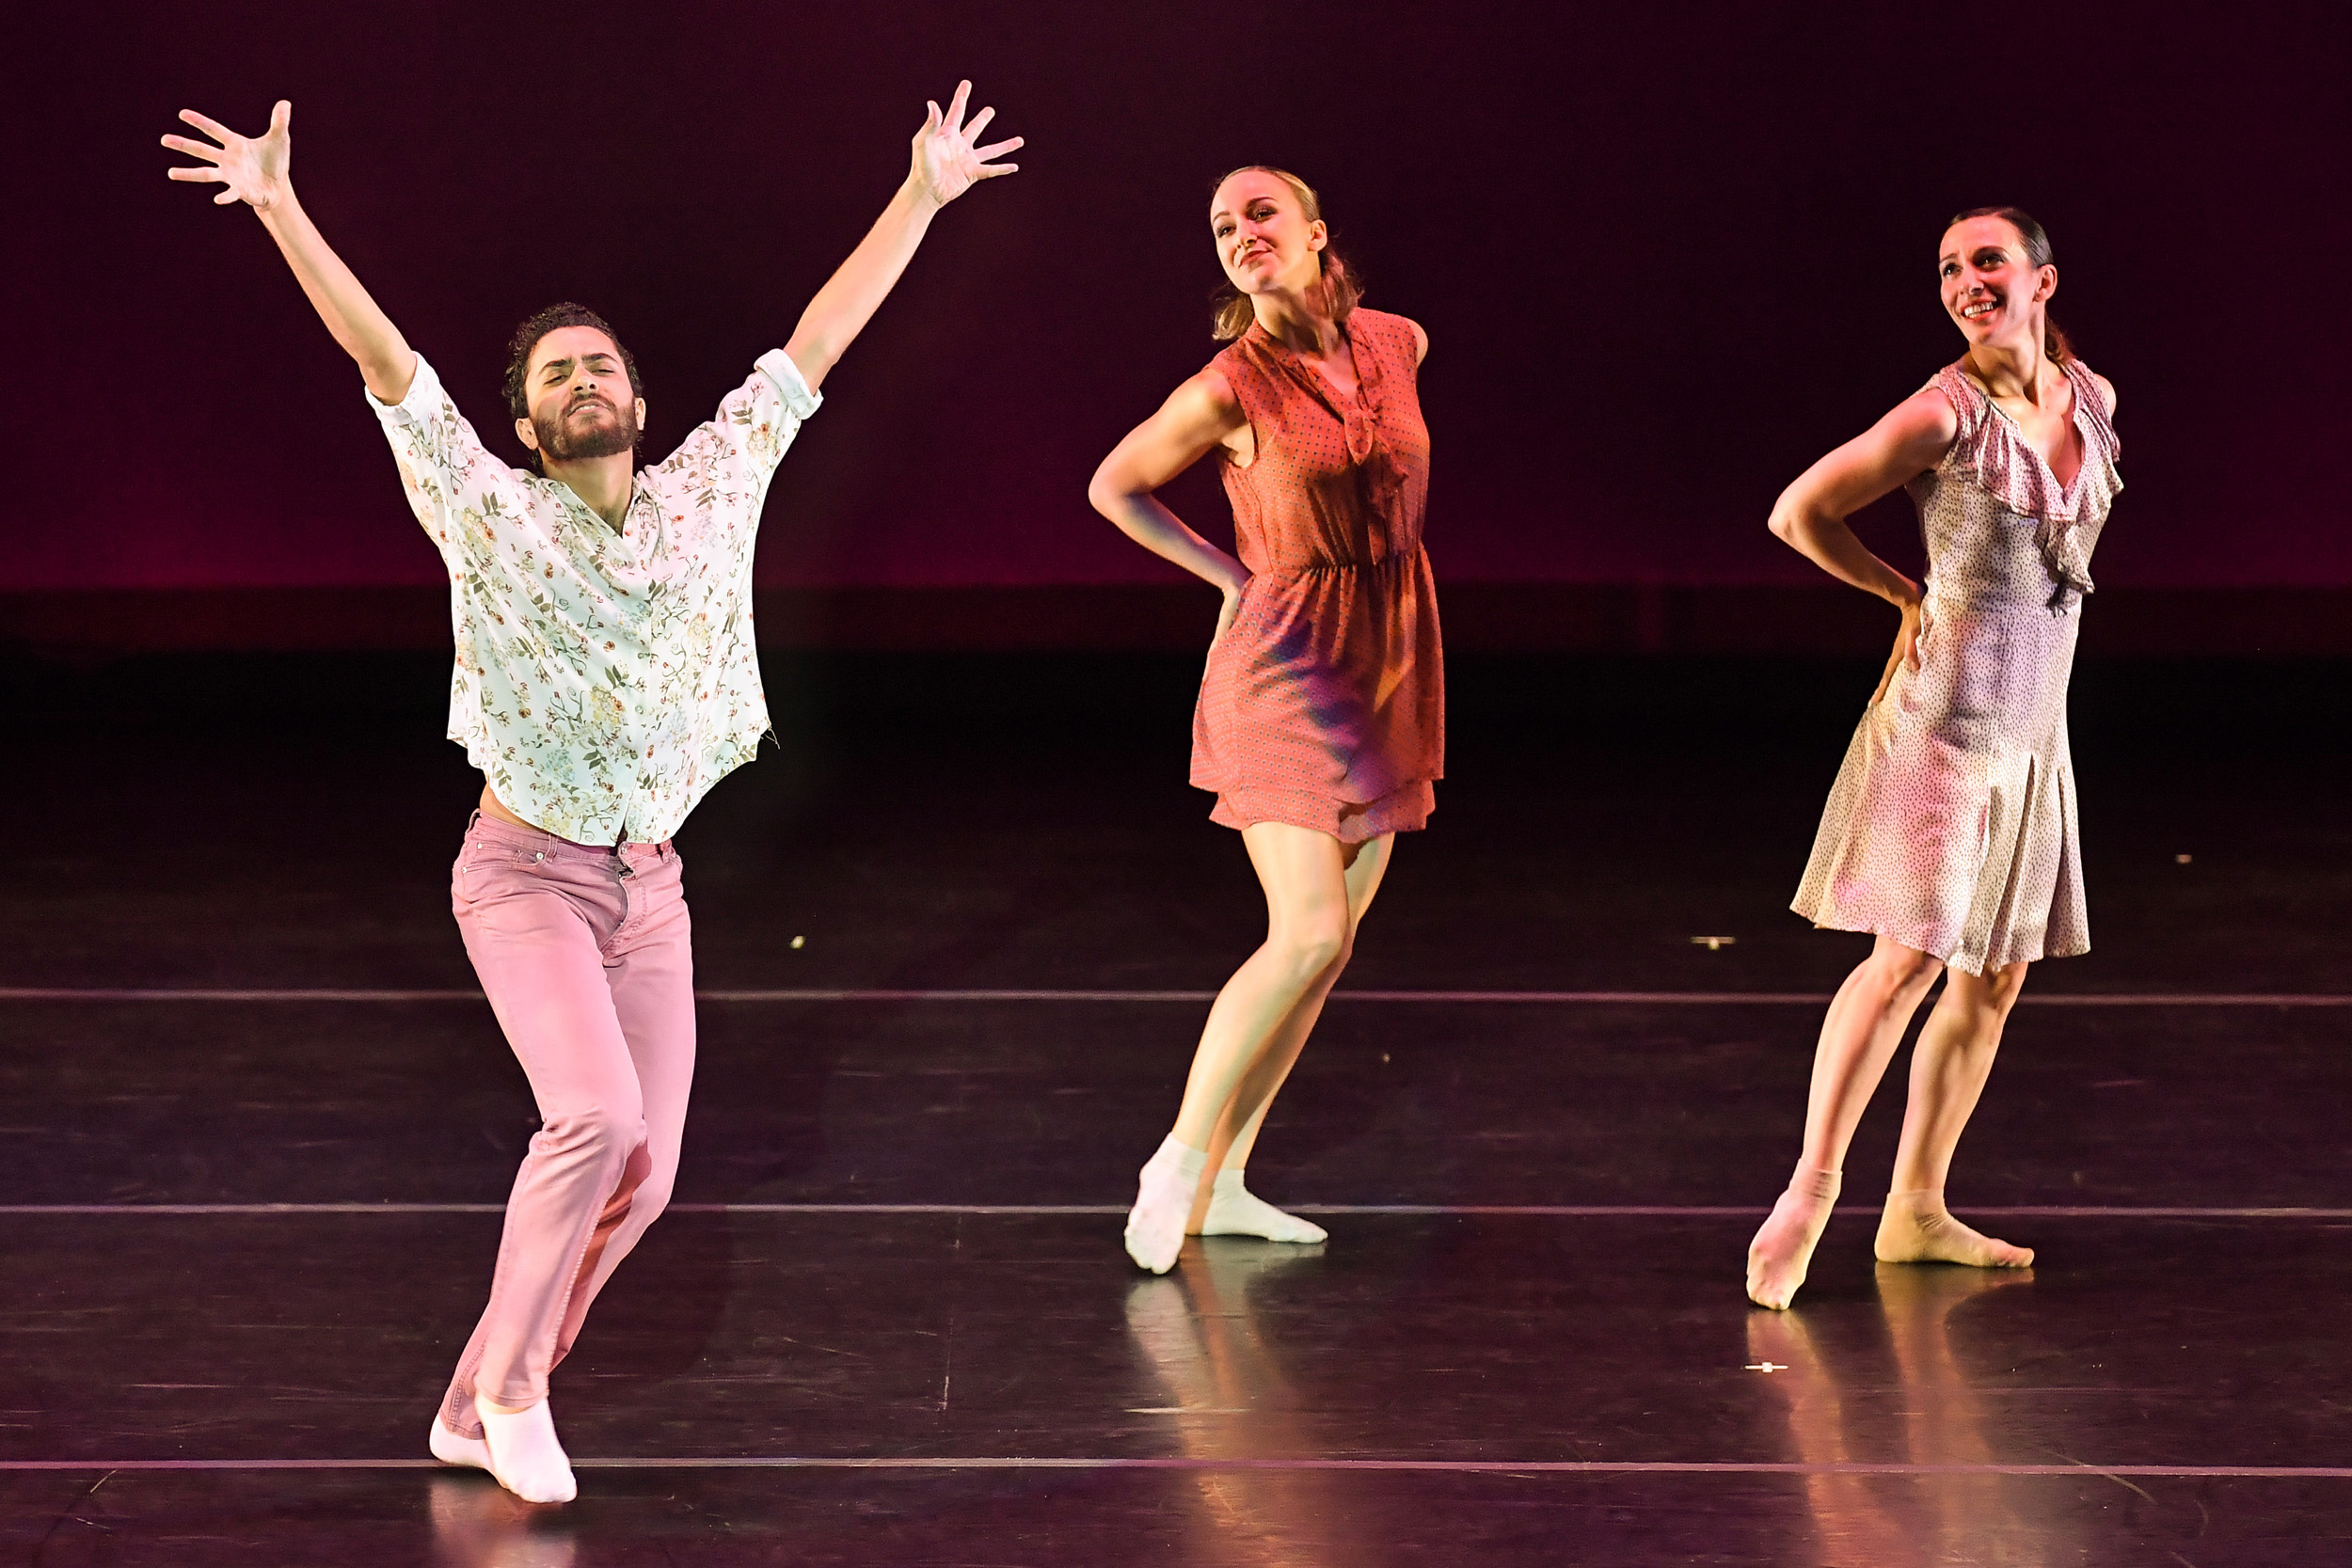 BODYTRAFFIC performing at the Wallis Annenberg Center for the Performing Arts May 31, 2018. o2Joy. Choreography: Richard Siegal. Joseph Davis, Natalie Leibert, Tina Finkelman Berkett. PHOTO CREDIT: Rob Latour.